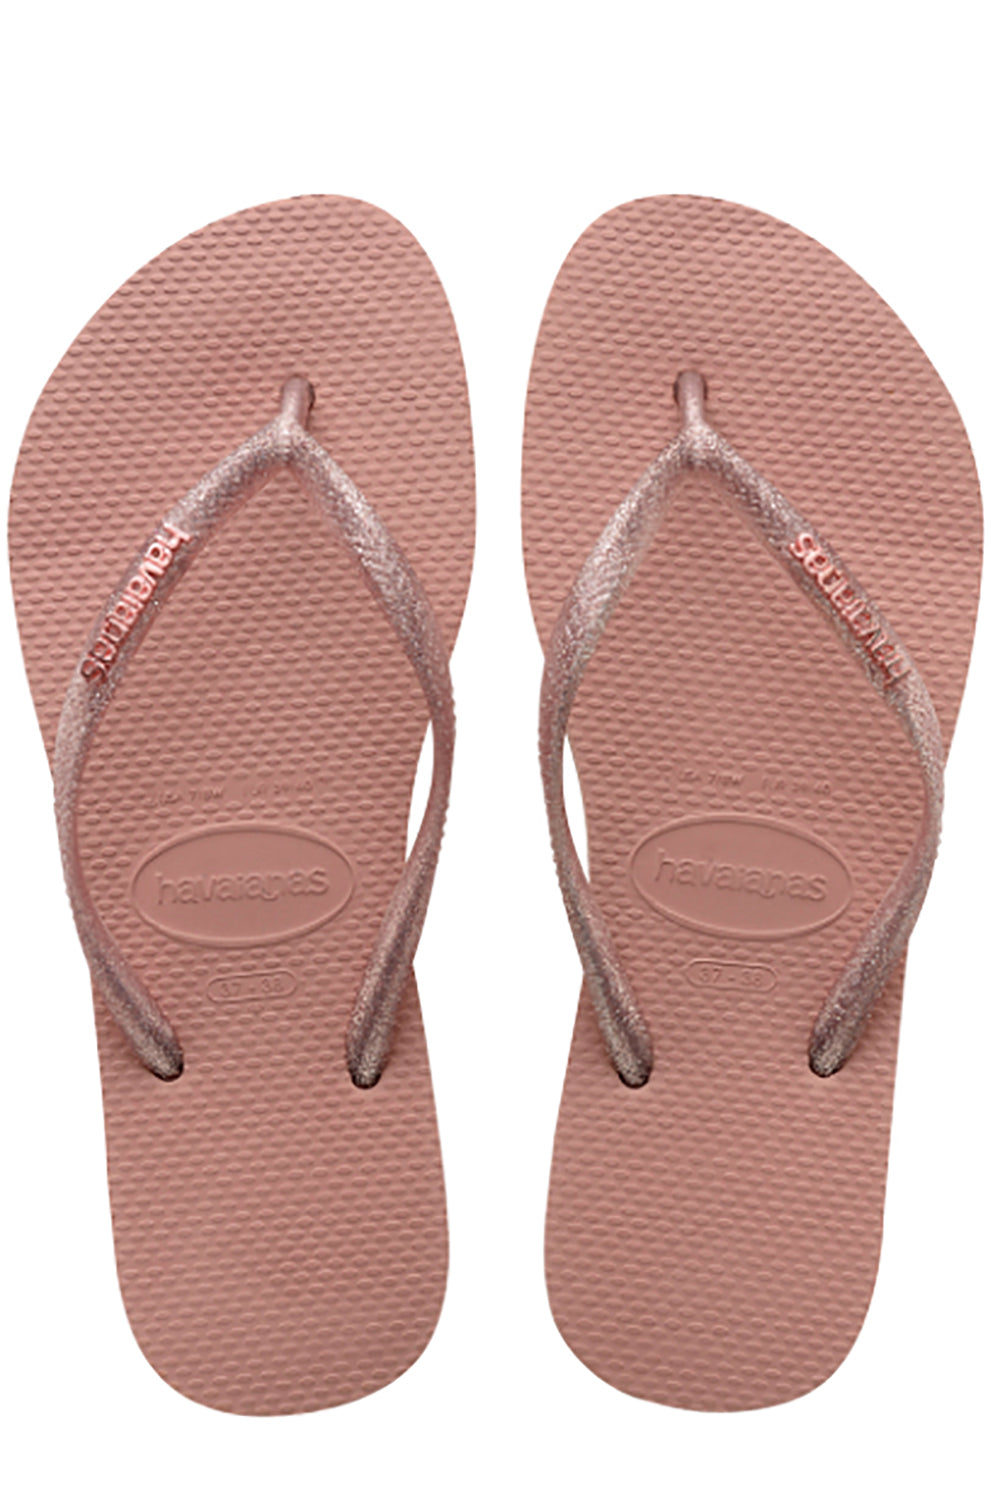 Havaianas Slim Logo Metallic in Rose Gold